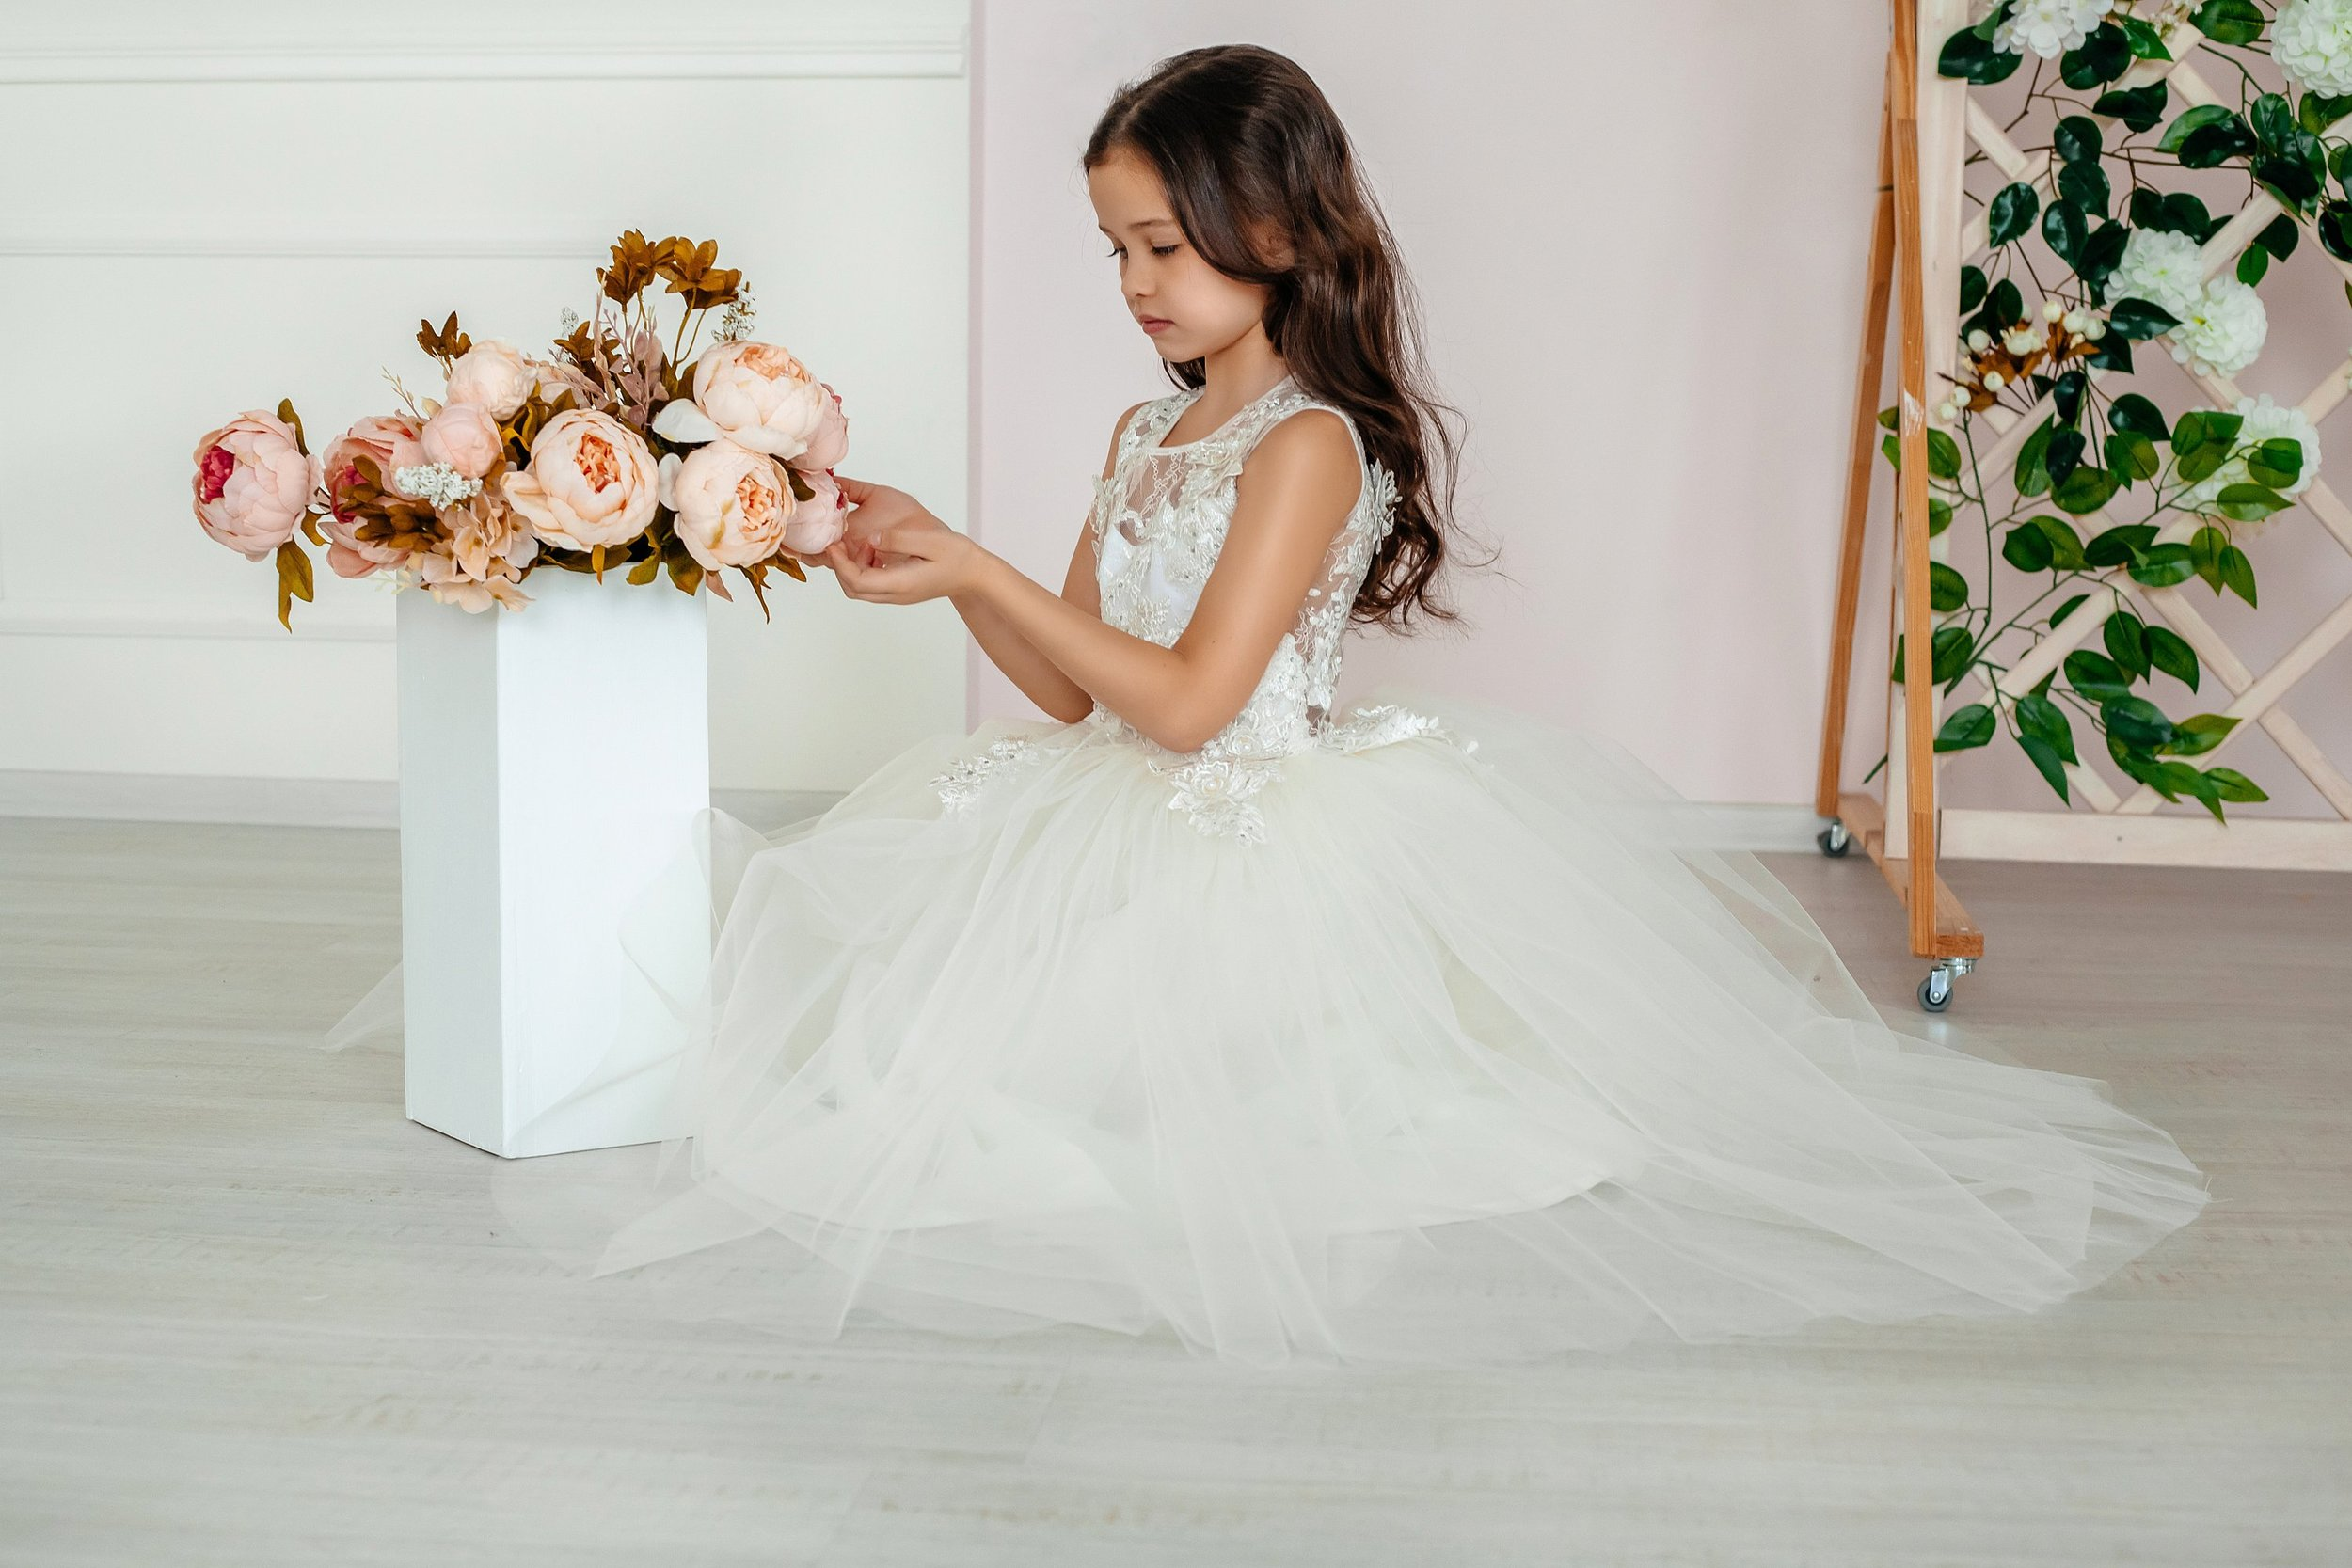 Ivory Lace Flower Girl Dress.jpg